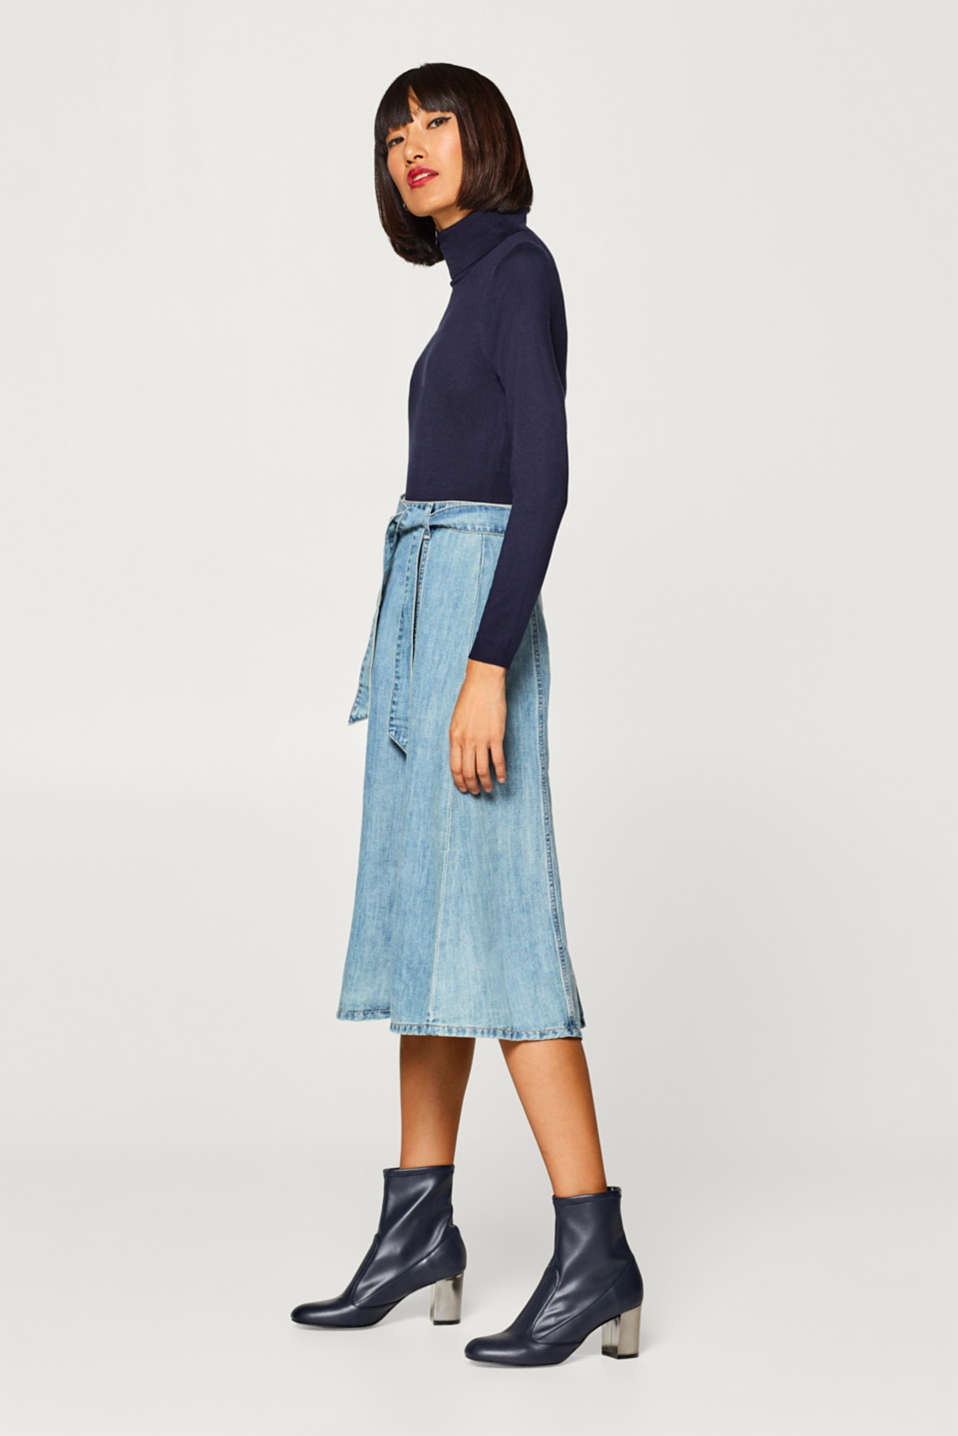 With linen: Swirling denim skirt in an A-line